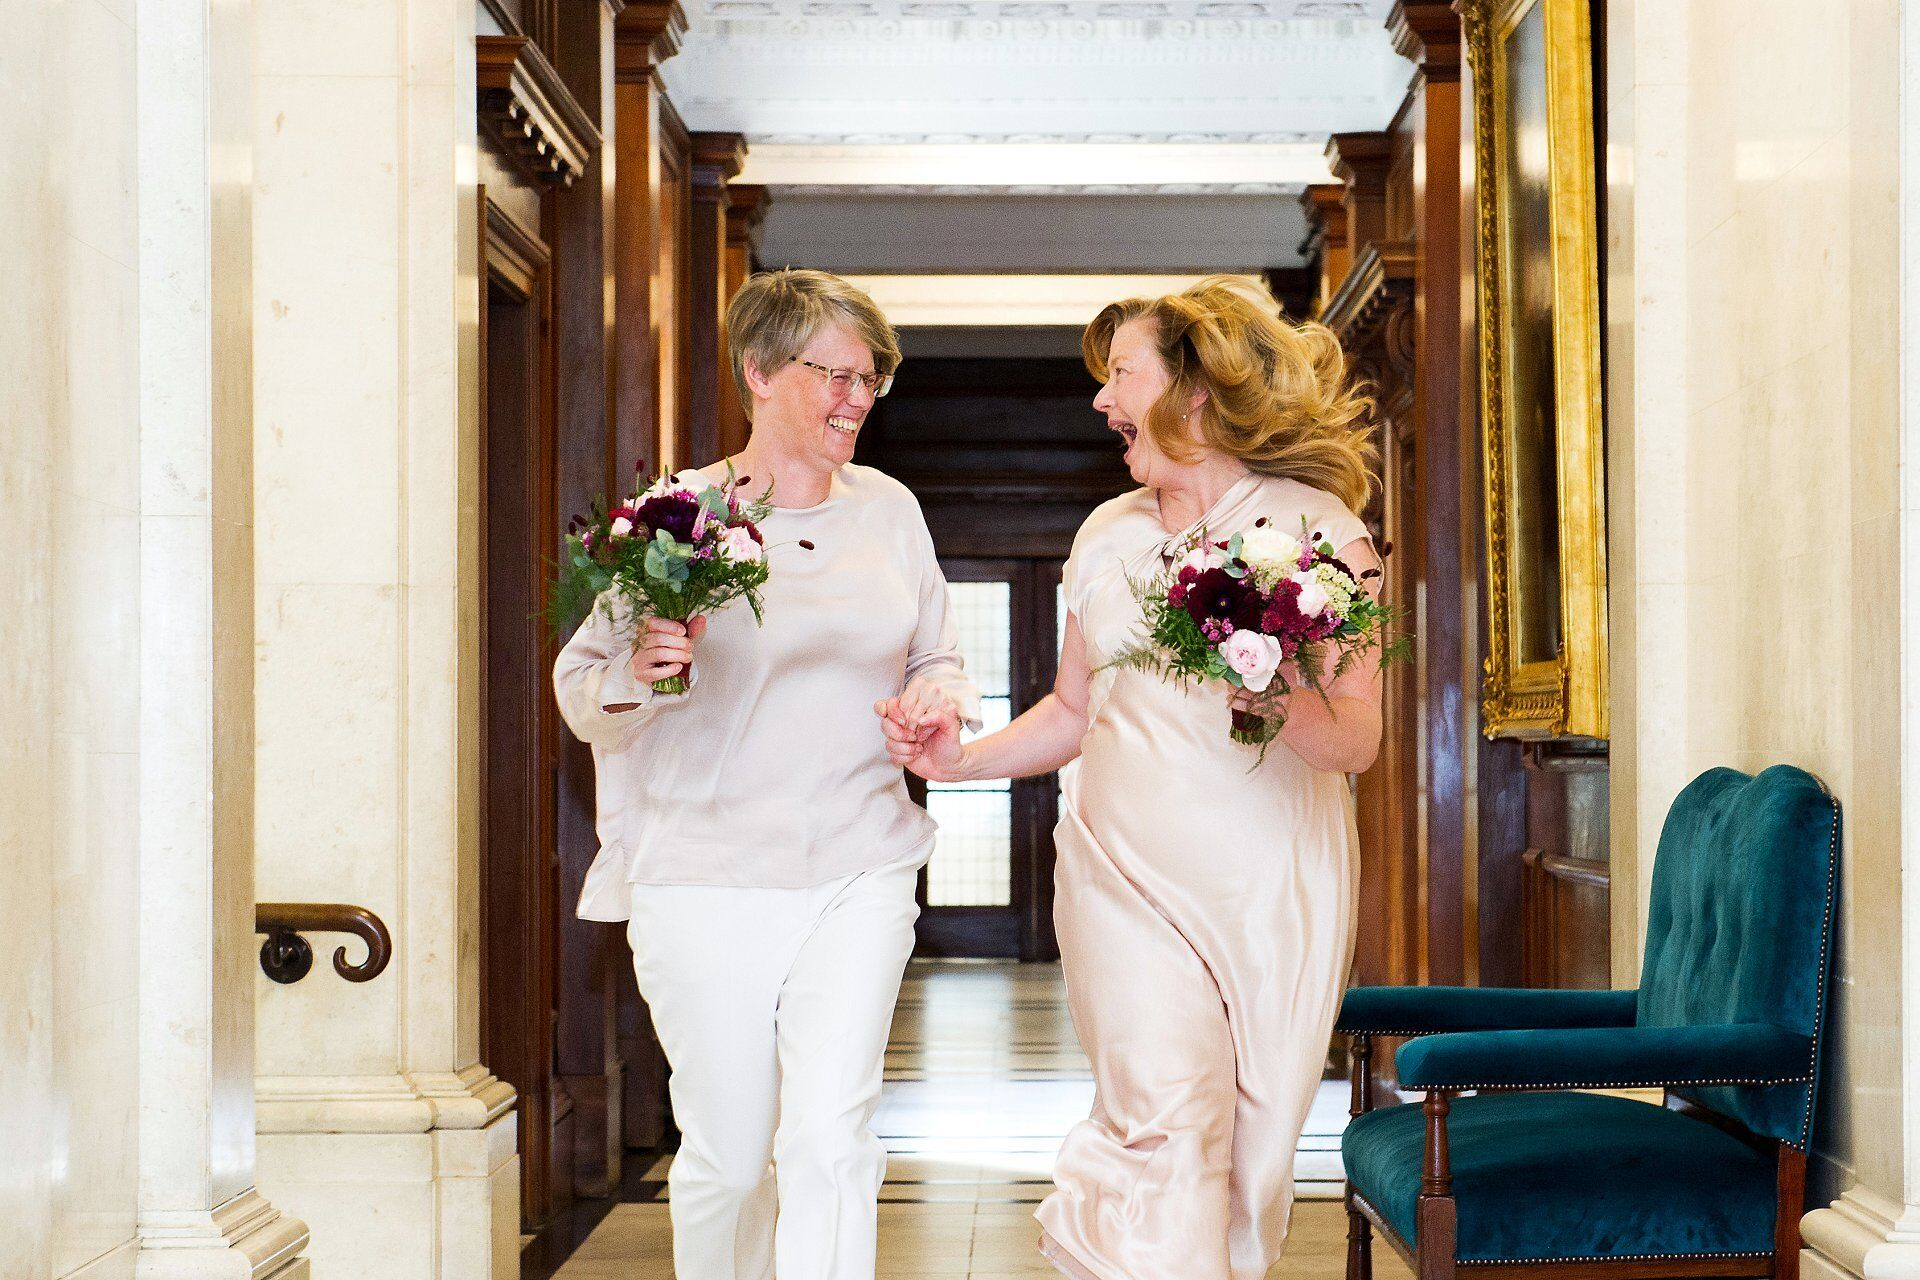 old marylebone town hall wedding photographer captures two brides running along the corrridor after their paddington room ceremony